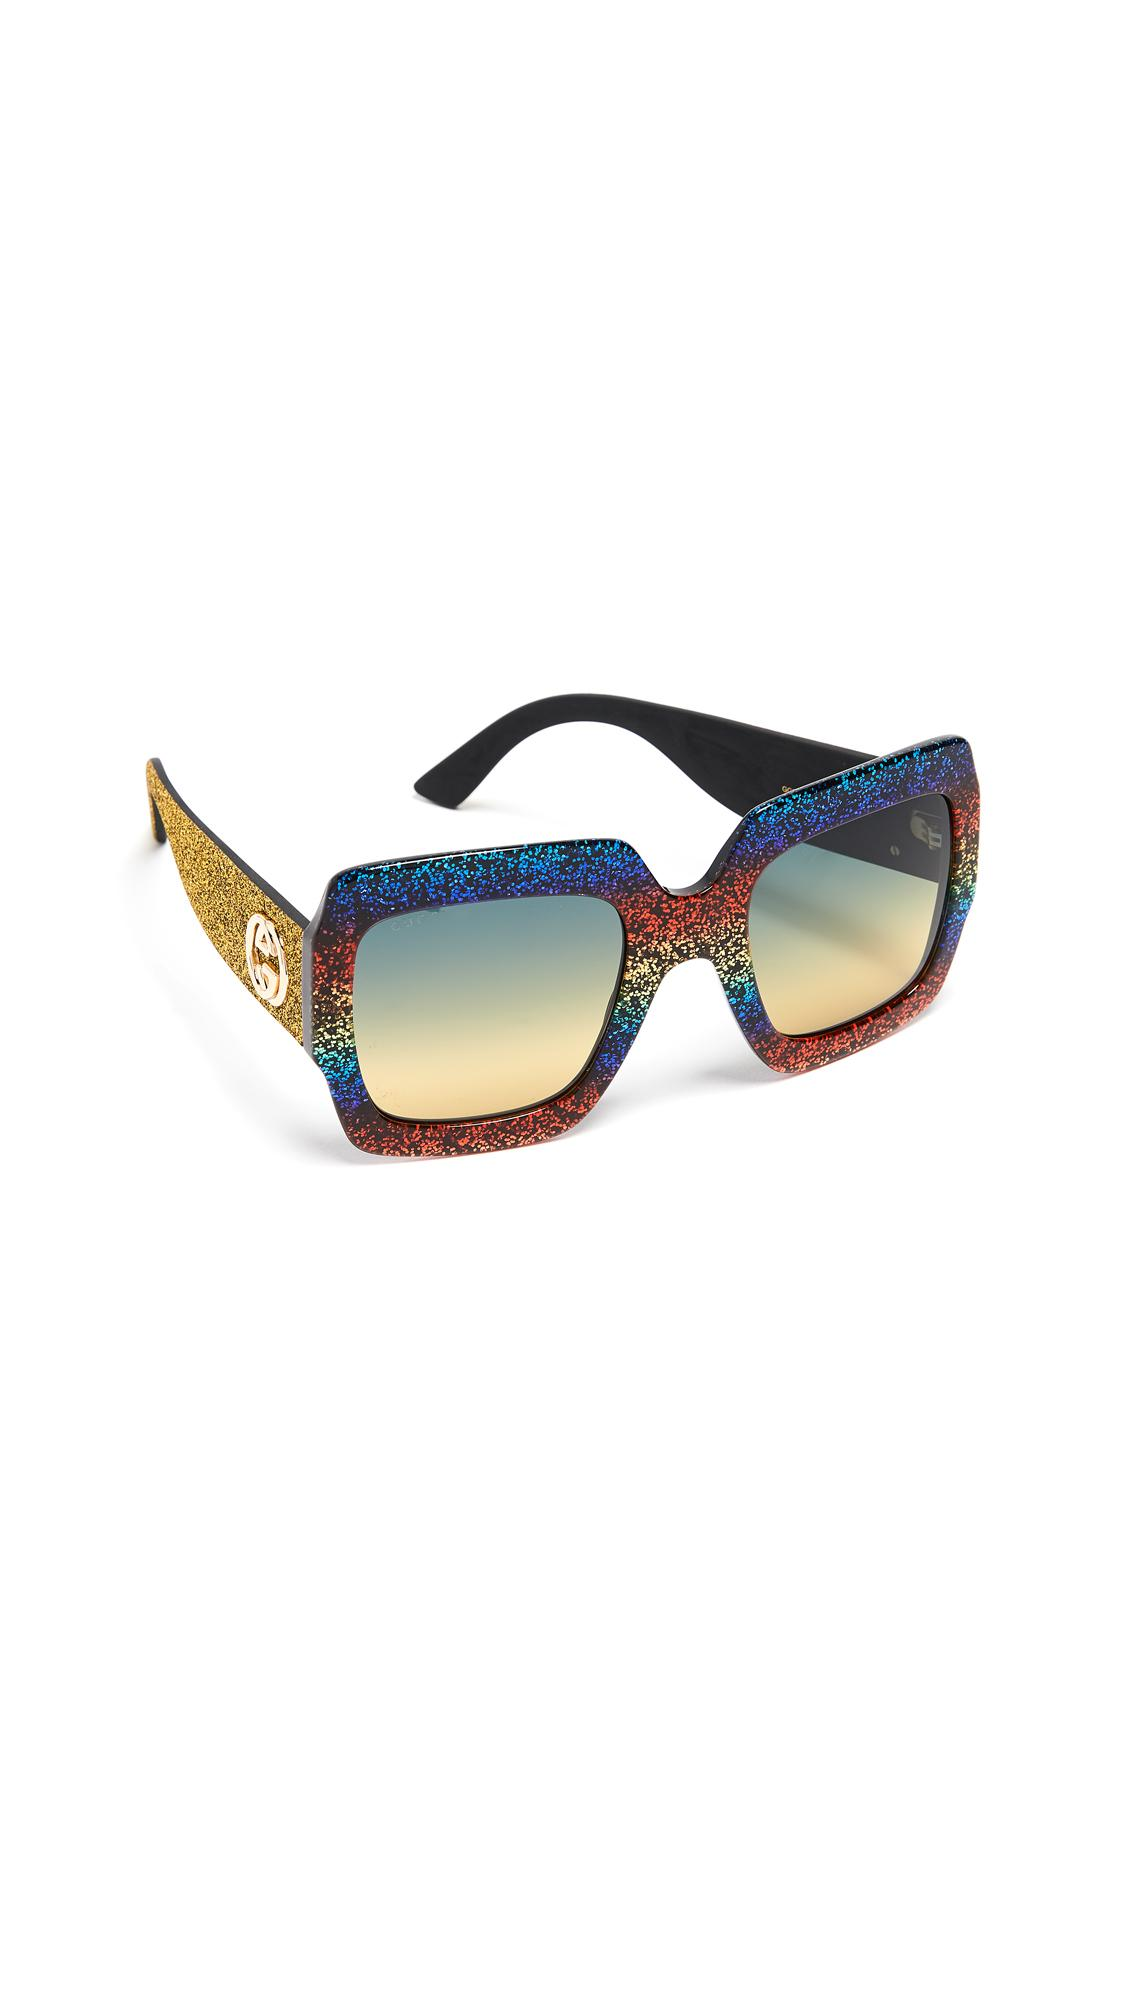 14b7af62b Gucci Pop Glitter Iconic Oversized Square Sunglasses In Glitter Rainbow Gold /Grey